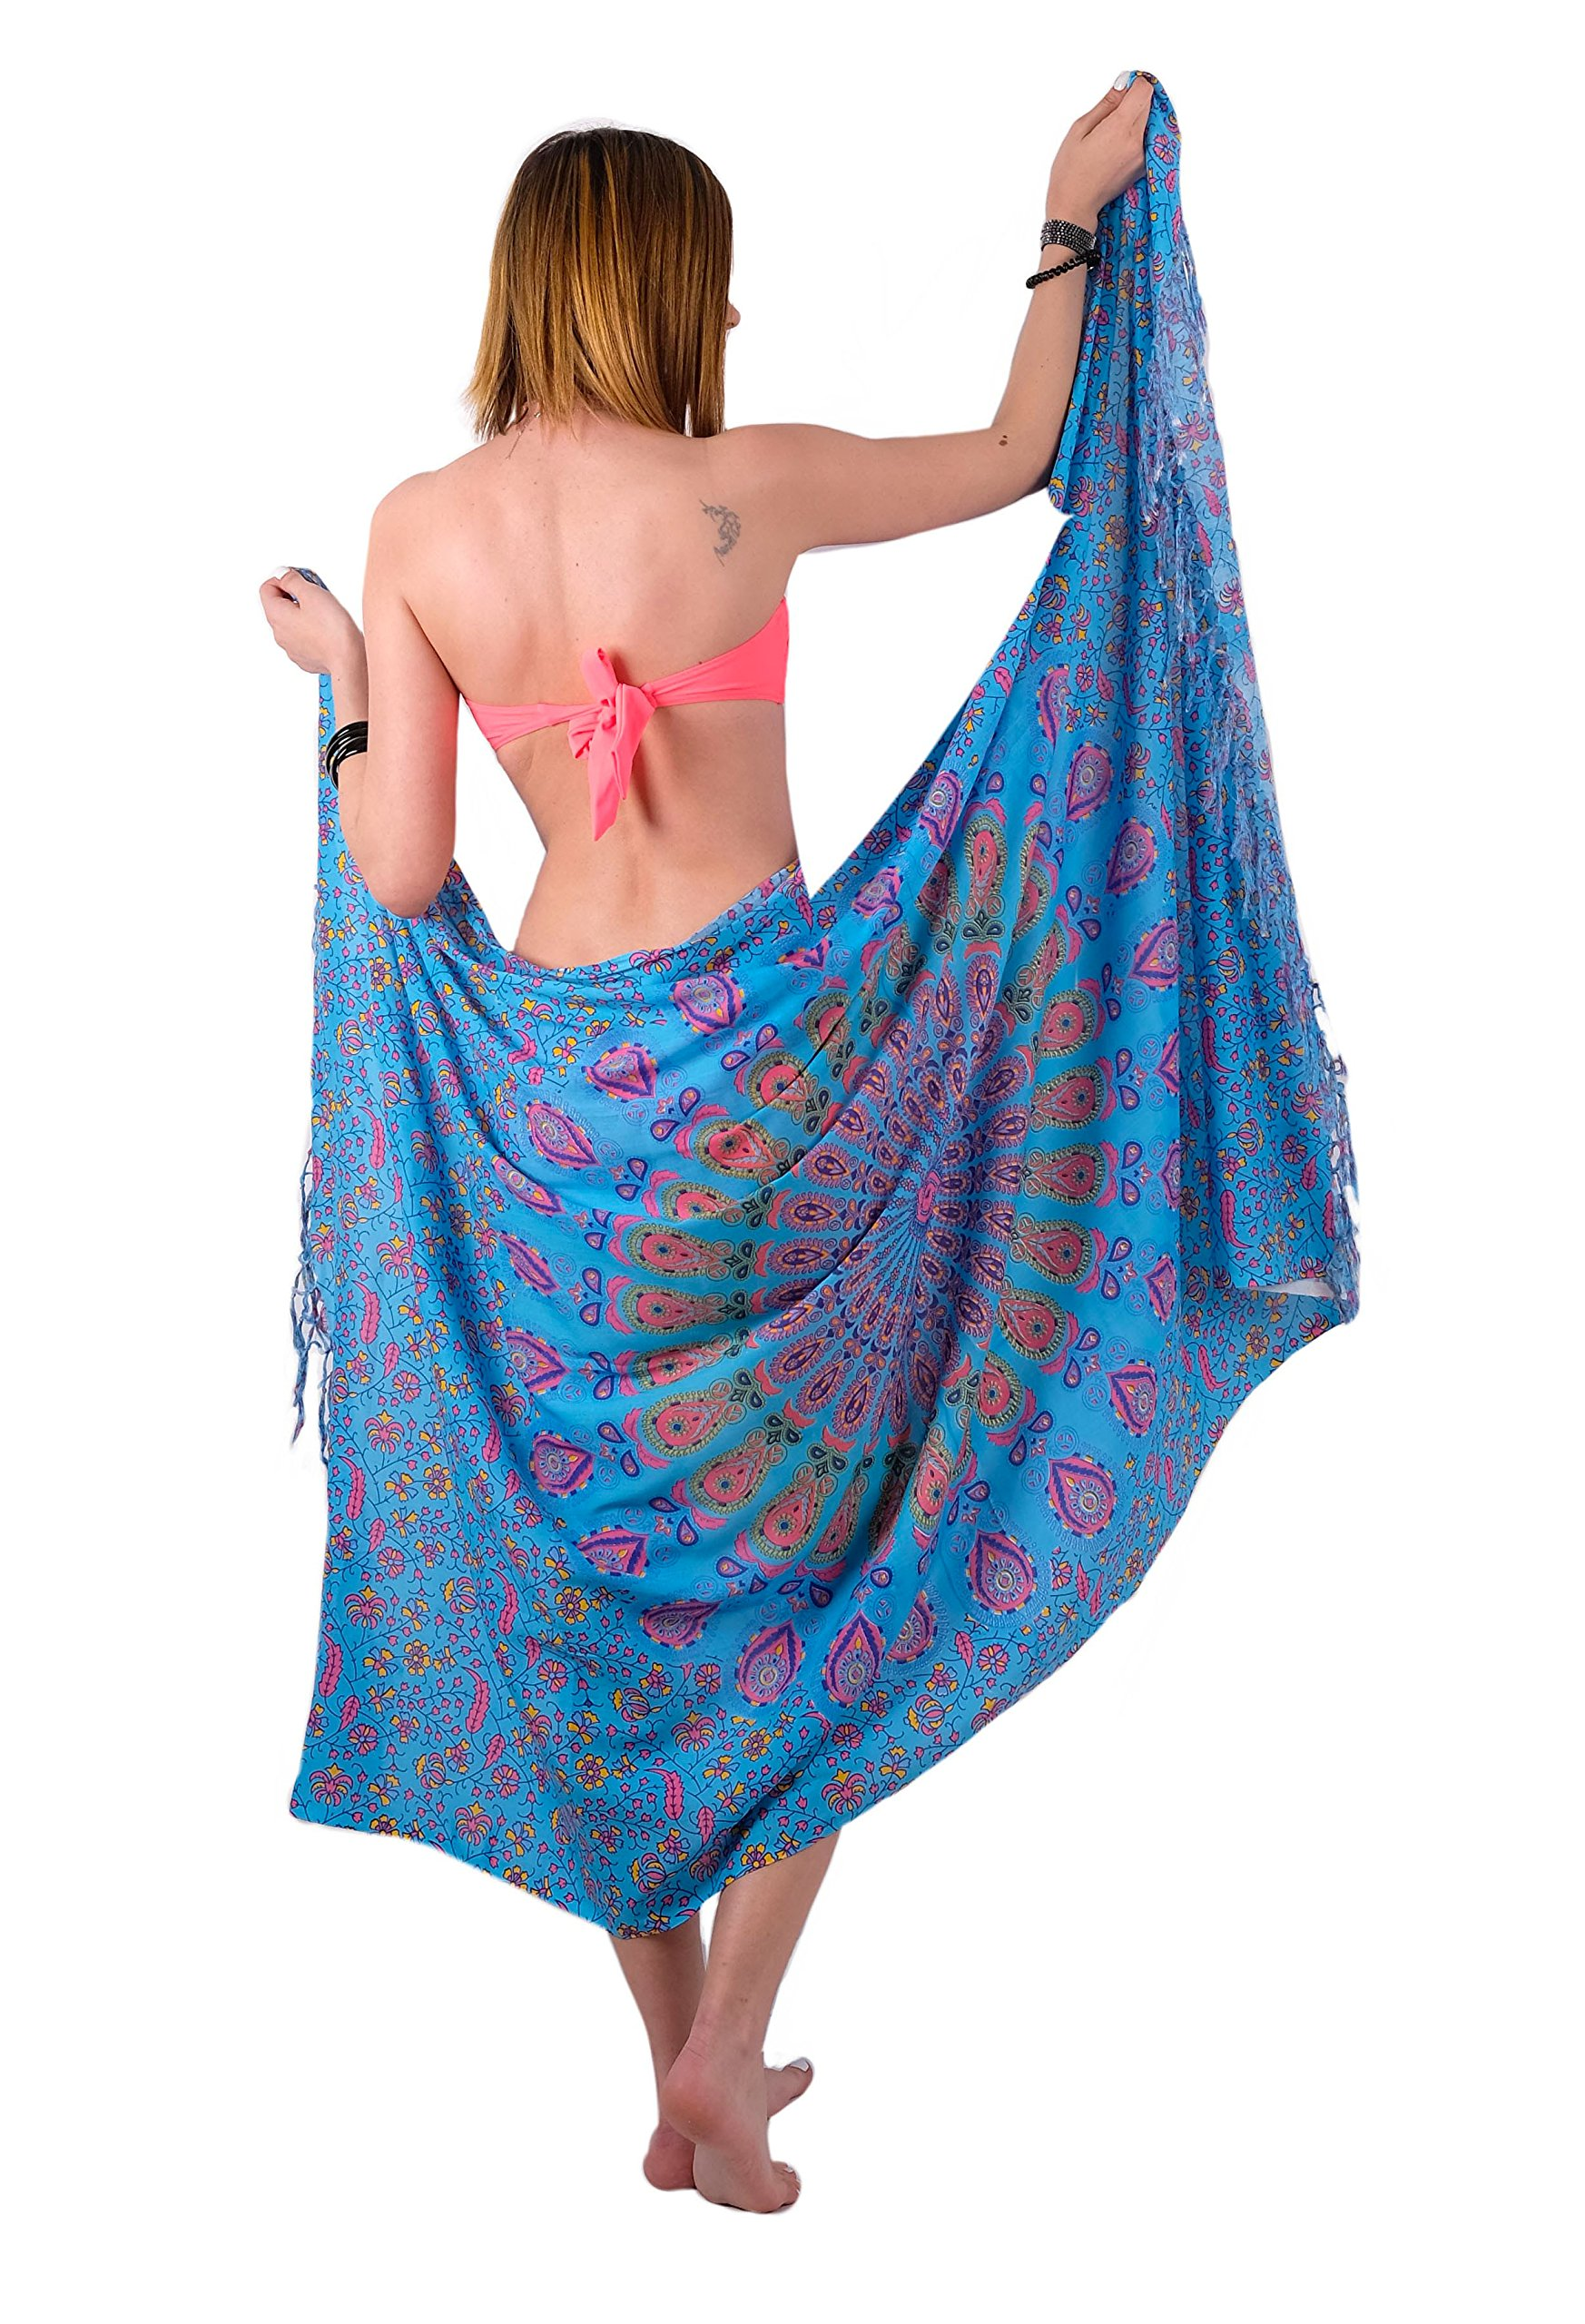 Boho Chic Sarong Gorgeous Hand-Printed Bohemian Pareo Endlessly Versatile Uses Bikini Swimsuit Cover Up,Beach Blanket,Tapestry,Dress,Wall Hanging,Throw by Mandala Life ART,Pink Peacock,Large